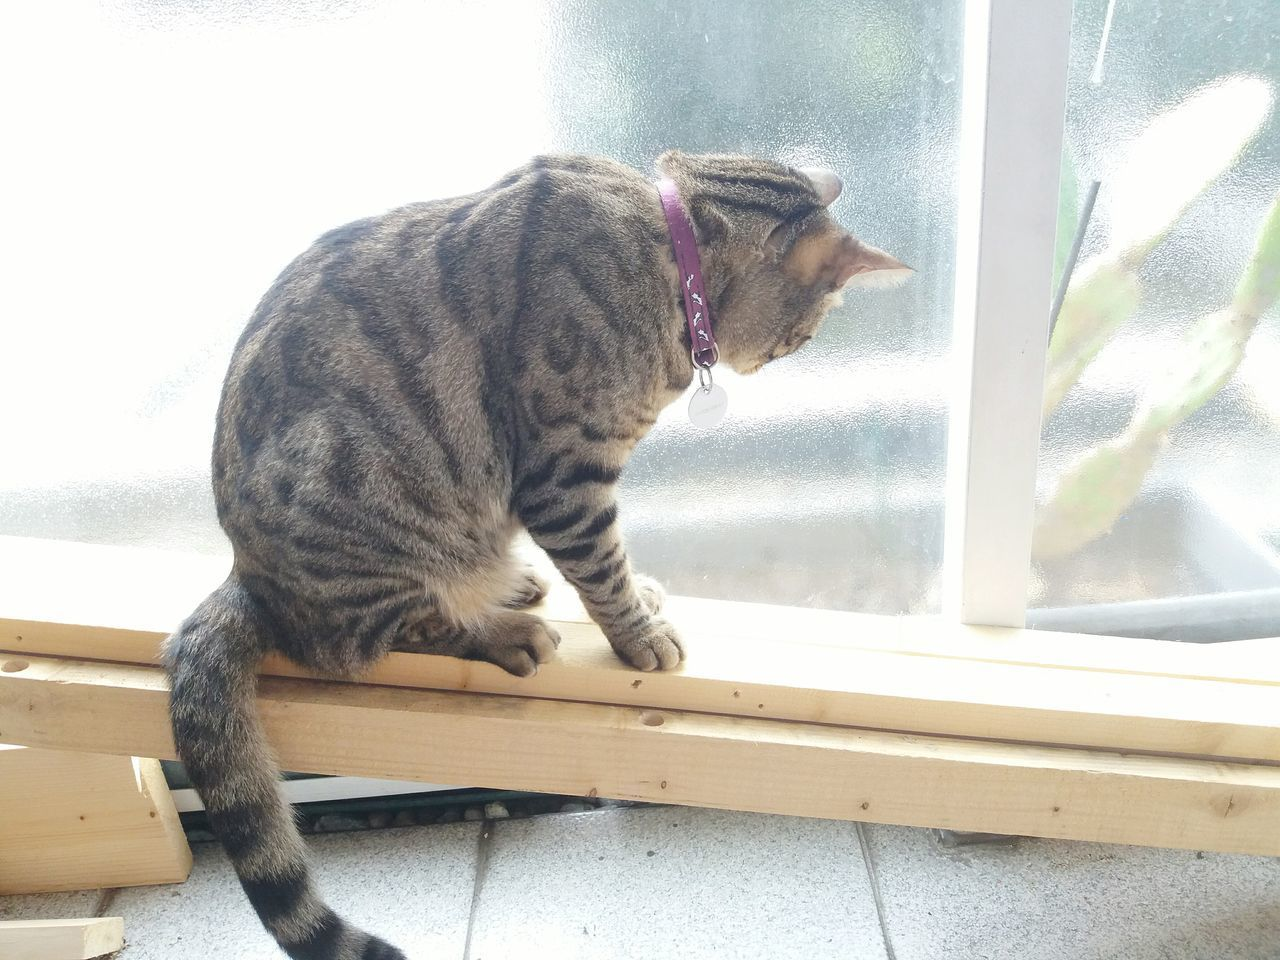 one animal, animal themes, pets, domestic cat, mammal, domestic animals, window, day, window sill, feline, no people, side view, sitting, indoors, full length, close-up